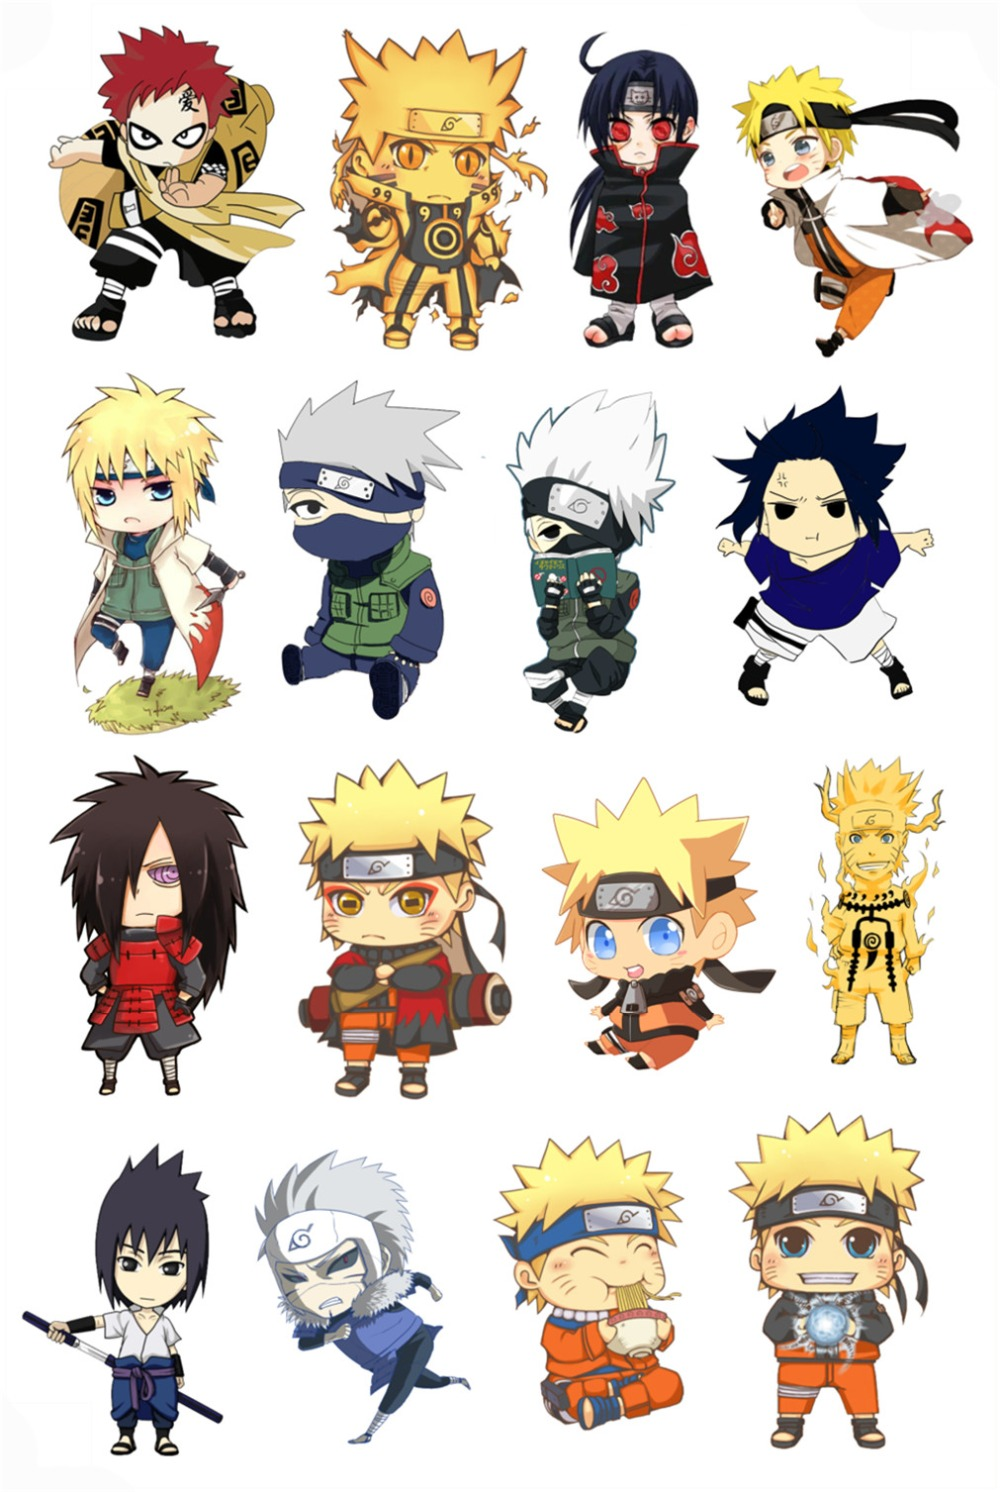 New naruto stickers wall stickers suitcase fridge laptop sticker waterproof anime decal 5 sheets set in wall stickers from home garden on aliexpress com